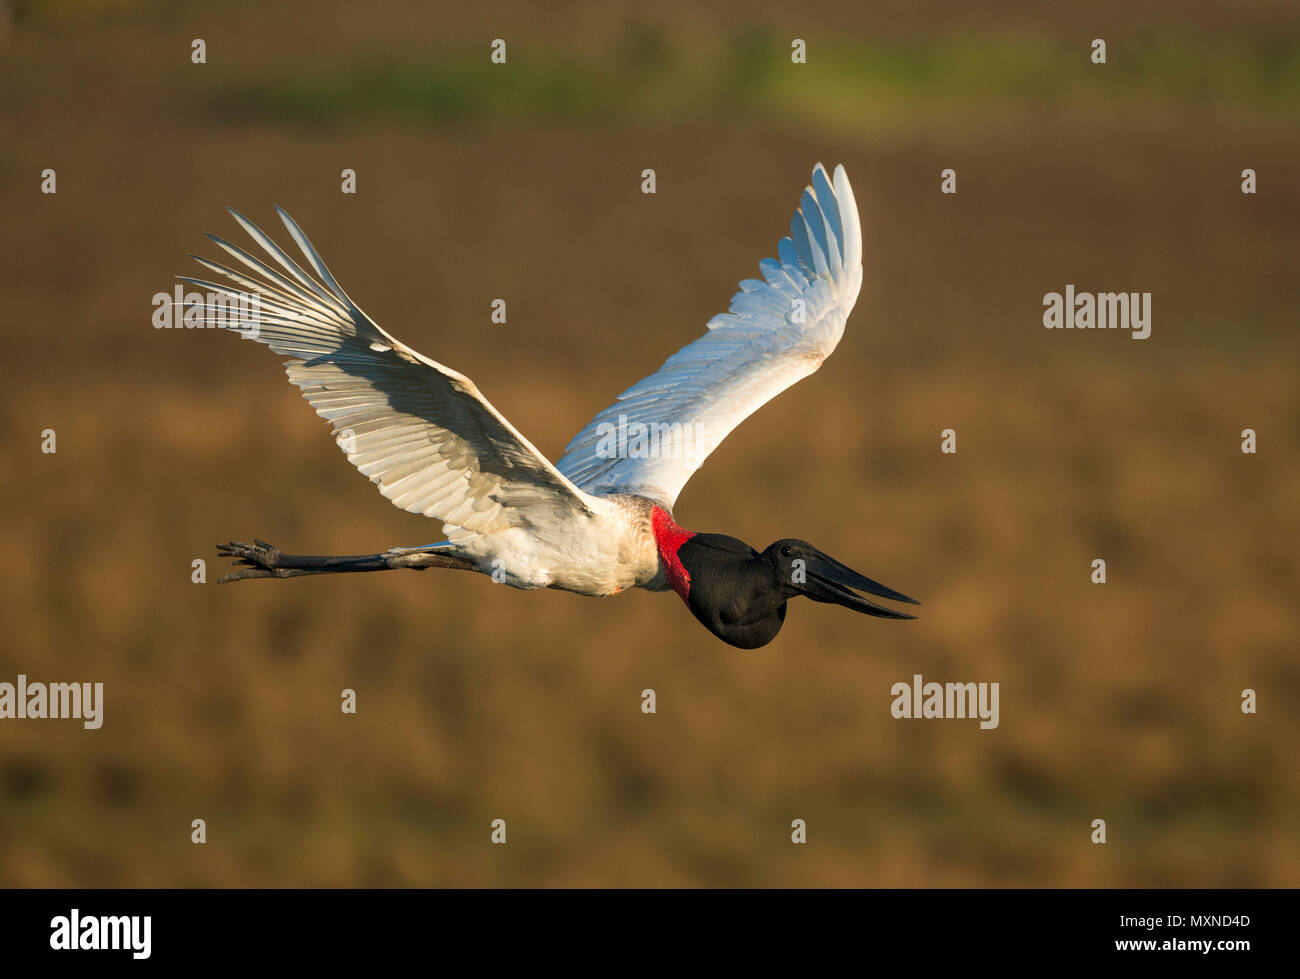 A Jabiru Stork flying over the fields of the Pantanal during the dry season. - Stock Image